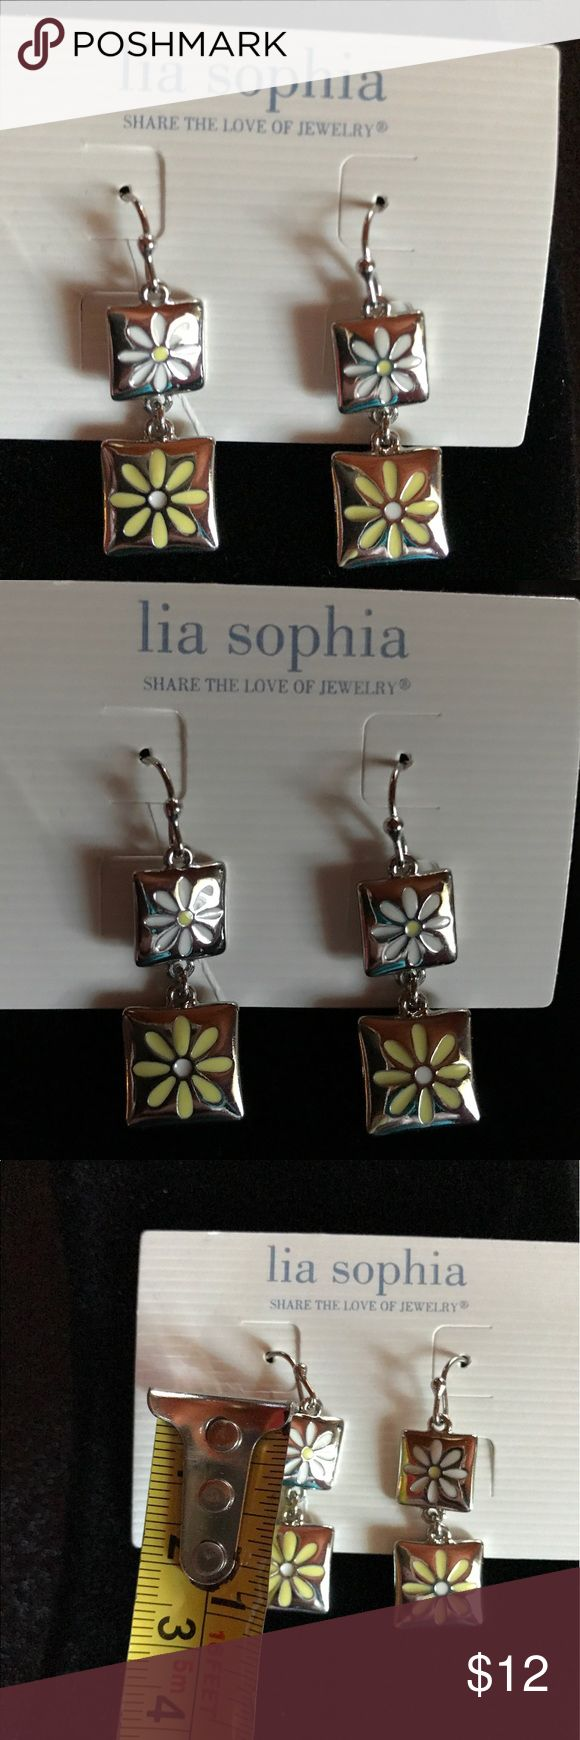 "🌝 Sun Kissed Lia Sophia Earrings 🌝 NWOT 🌝 Used As Display Only, Never Worn🌝 Silver Tone With Daisies🌝 1"" Dangle Earrings 🌝 Fast Shipper 🌝Smoke Free Home🌝 Lia Sophia Jewelry Earrings"